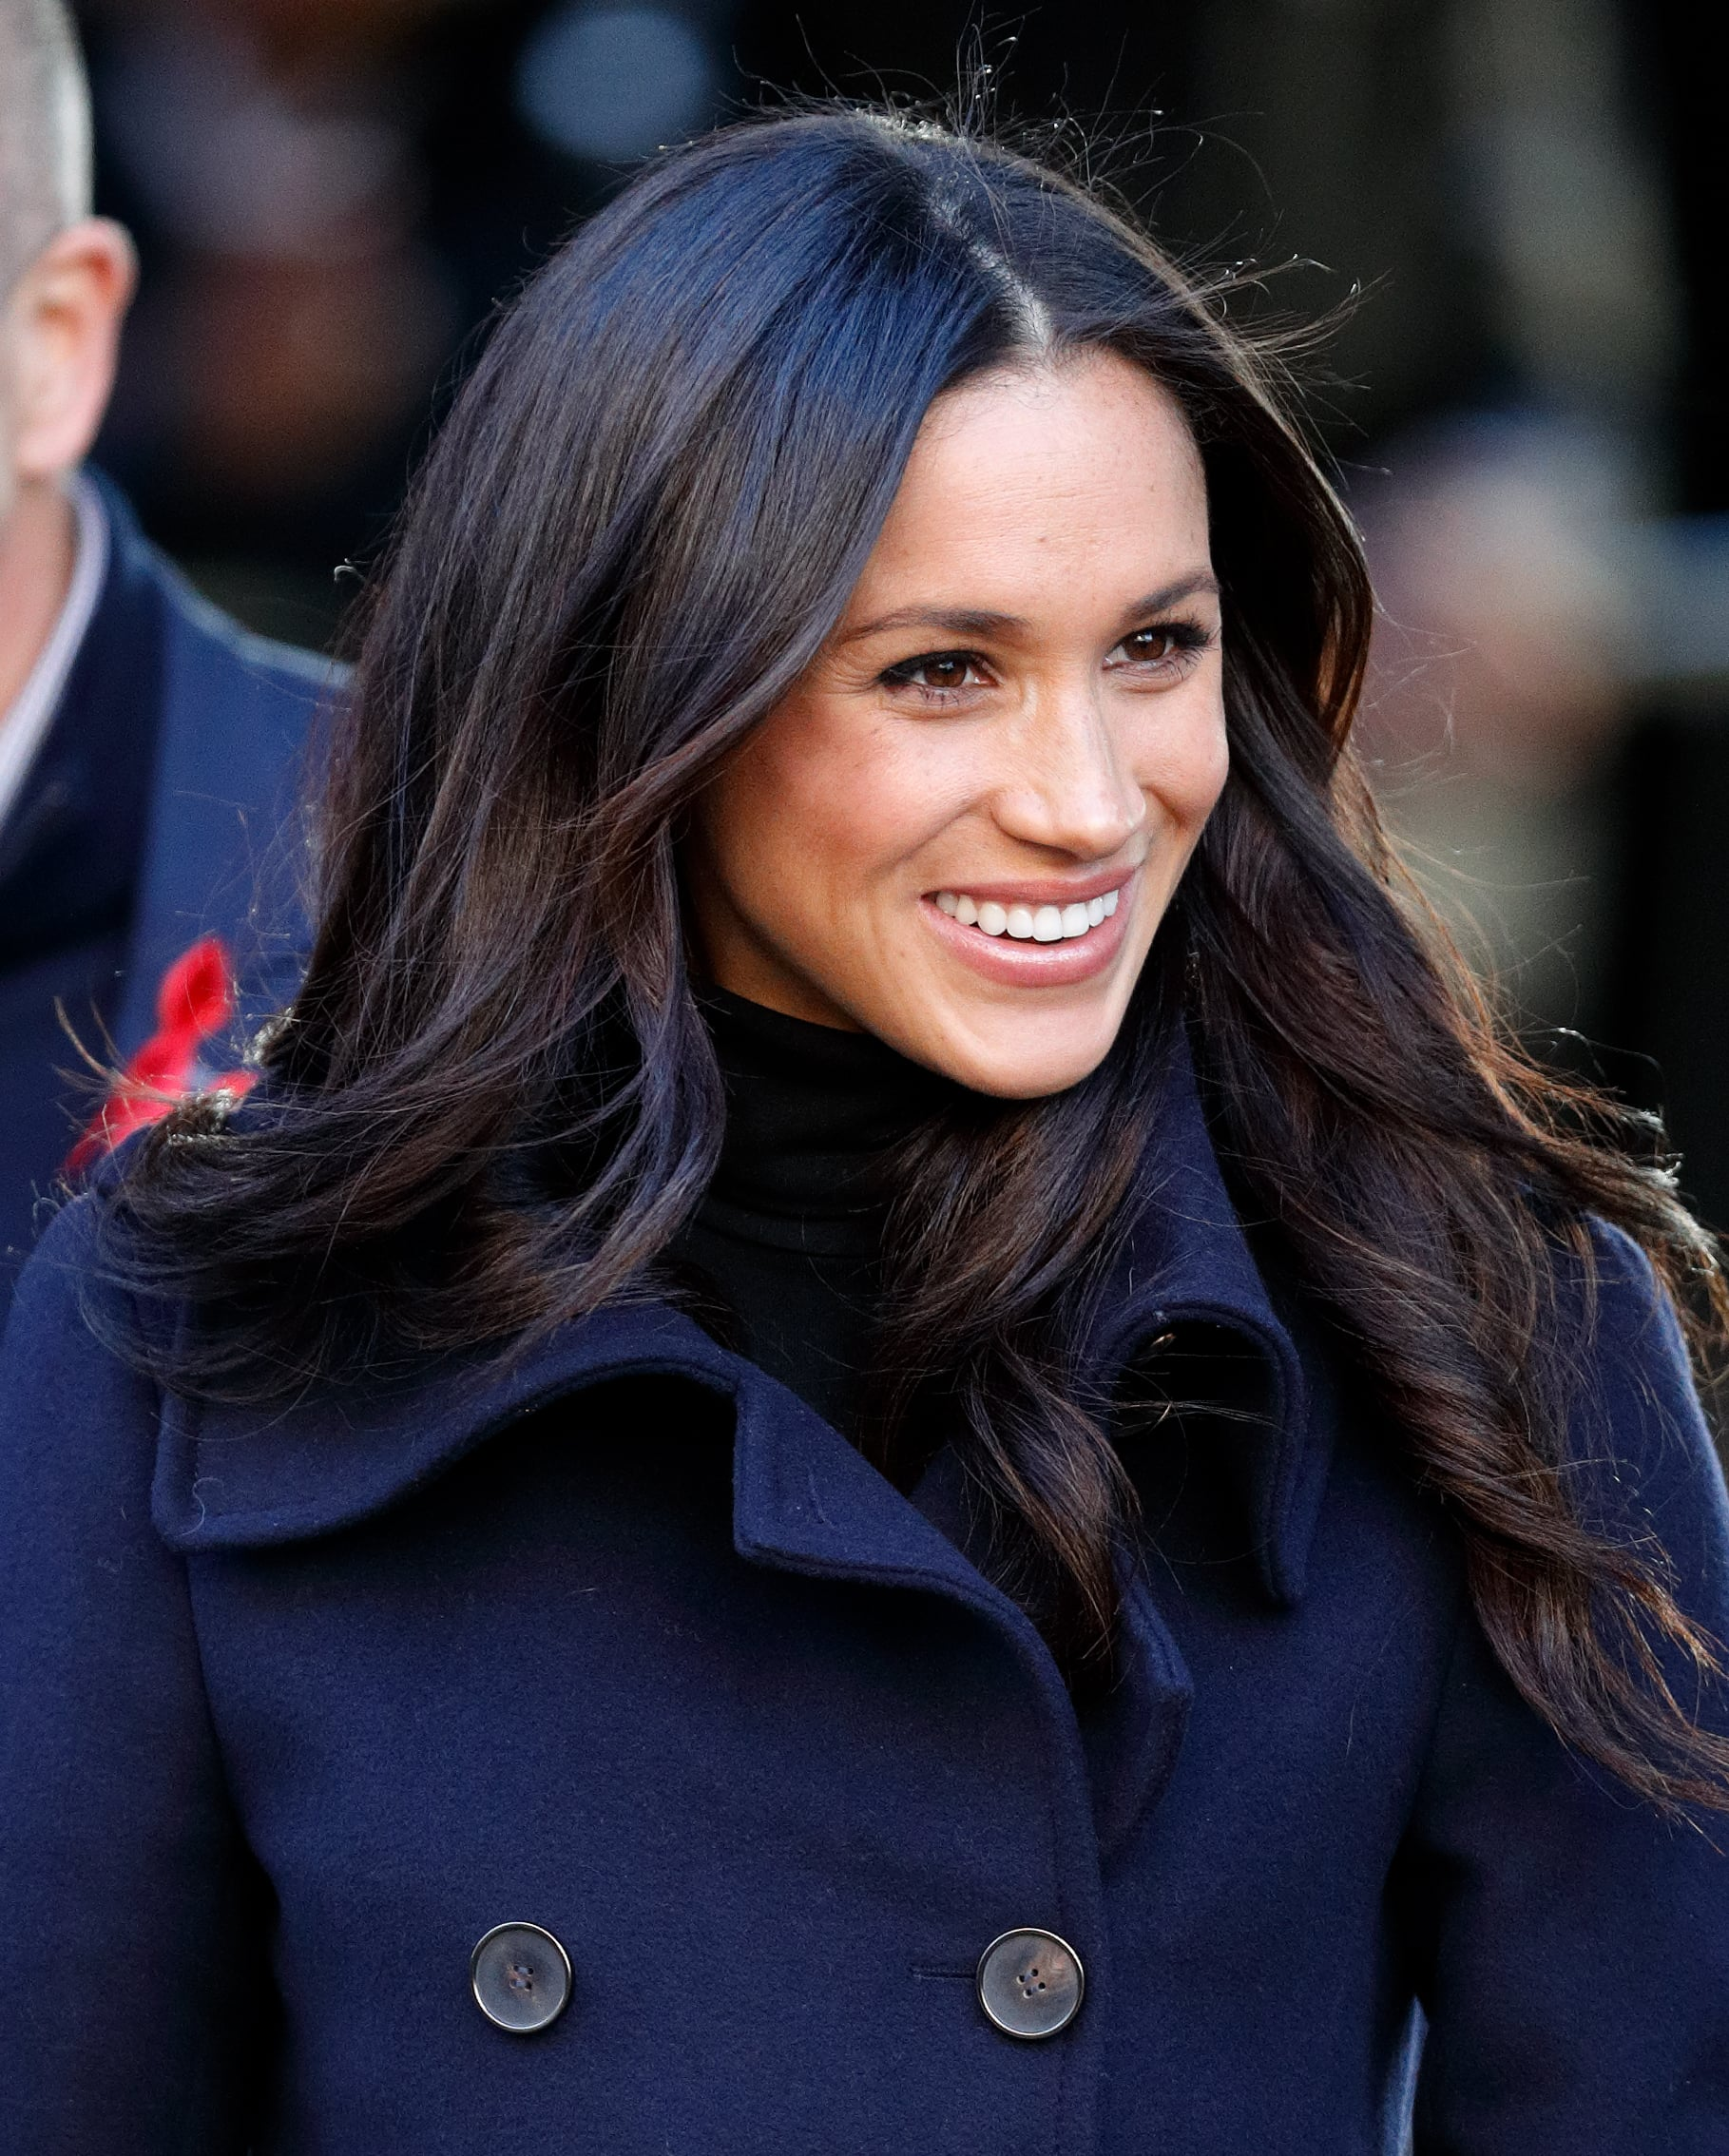 The Hair Product Everyone (Including Meghan Markle) Is Using images 0